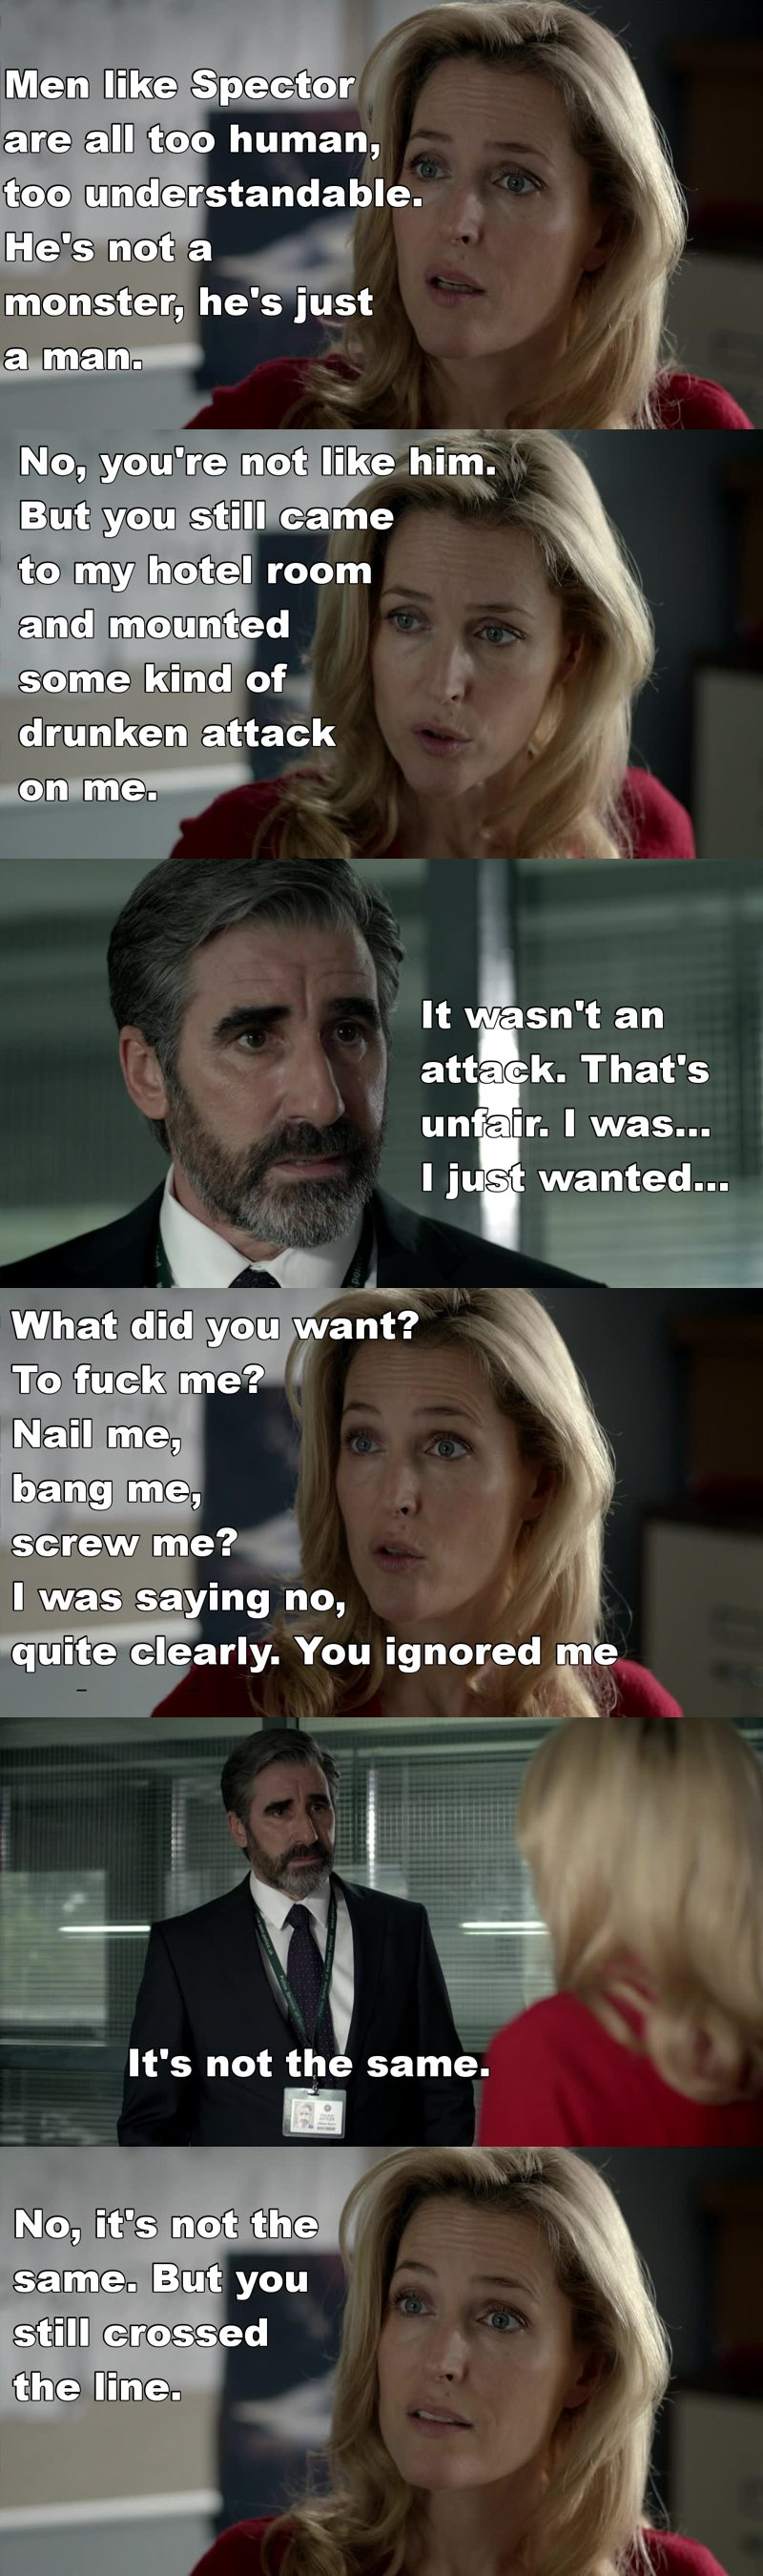 Another of those dialogues with Stella that Jim should think a hundred times before starting them....